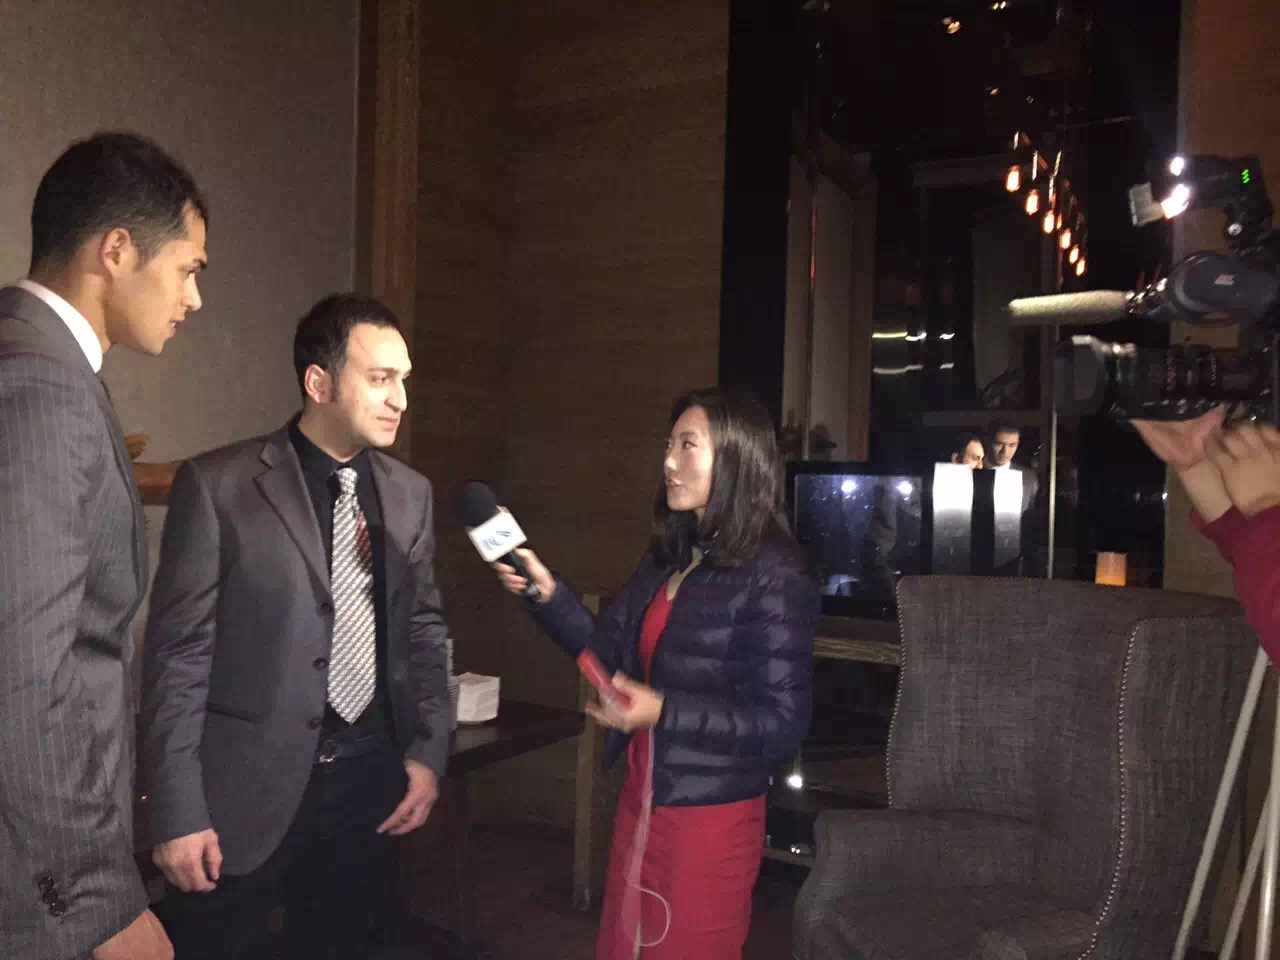 Intervista televisiva in Cina